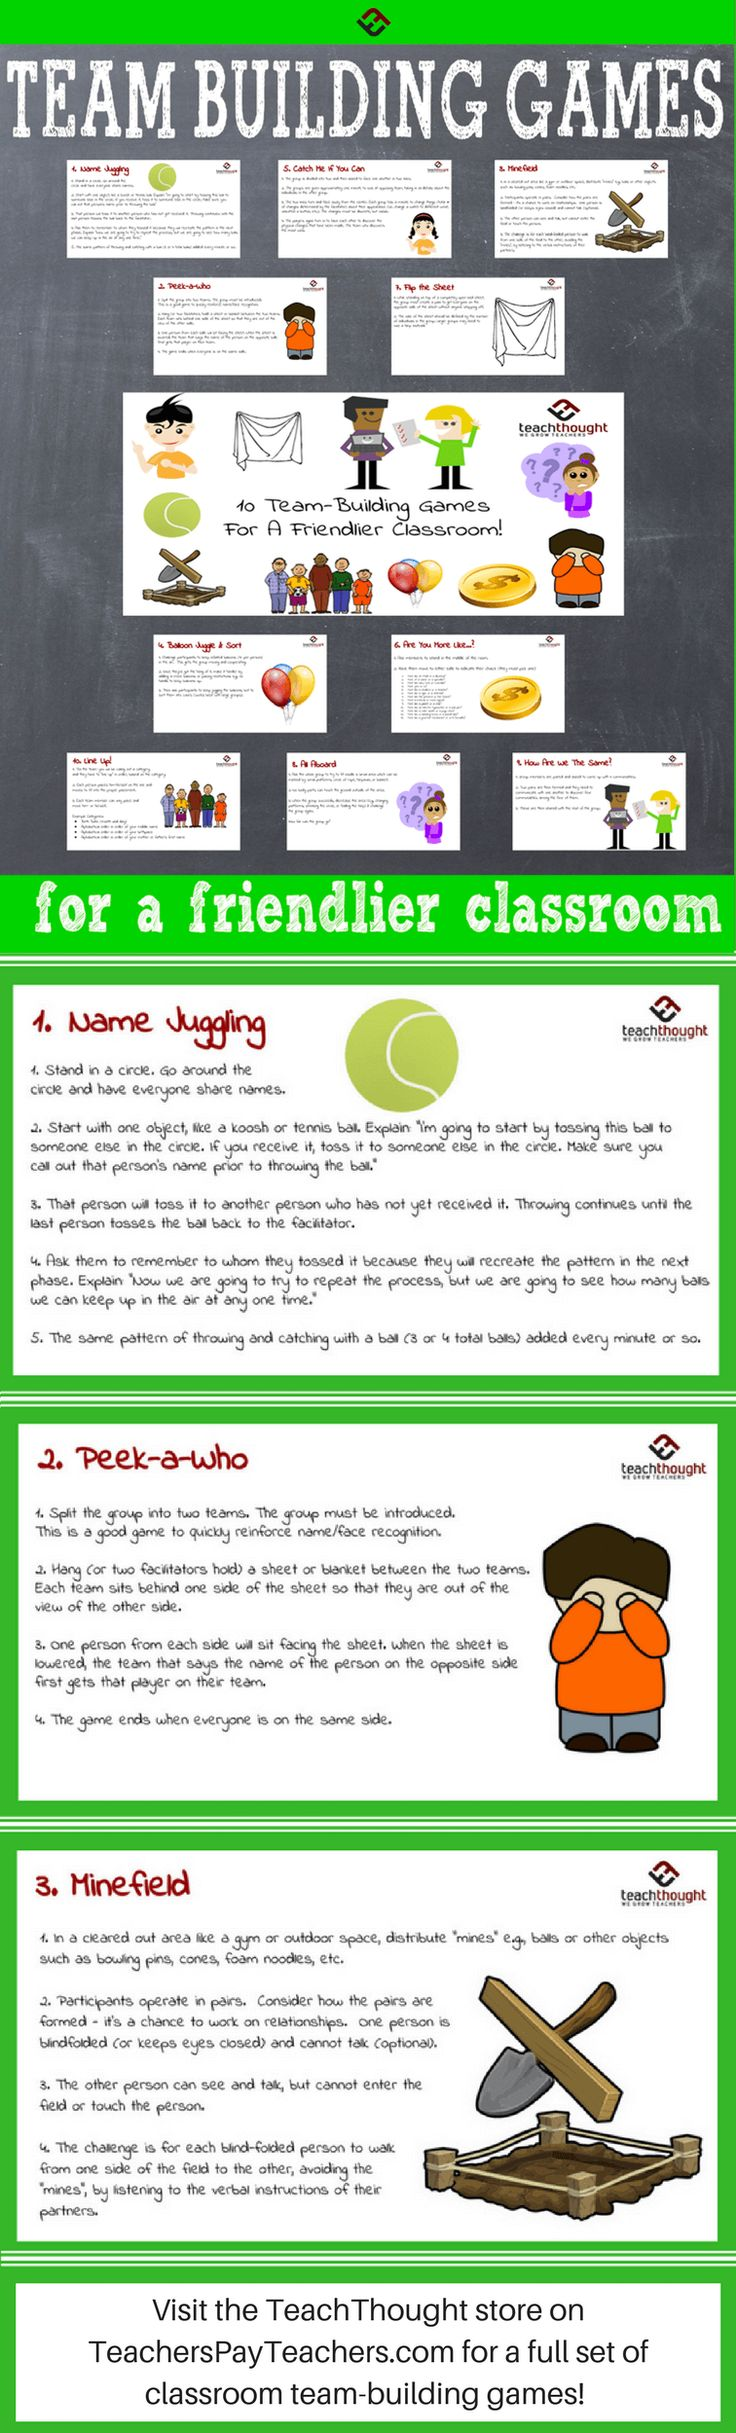 Help students become friends and create a collaborative environment in your classroom with these team-building game ideas.